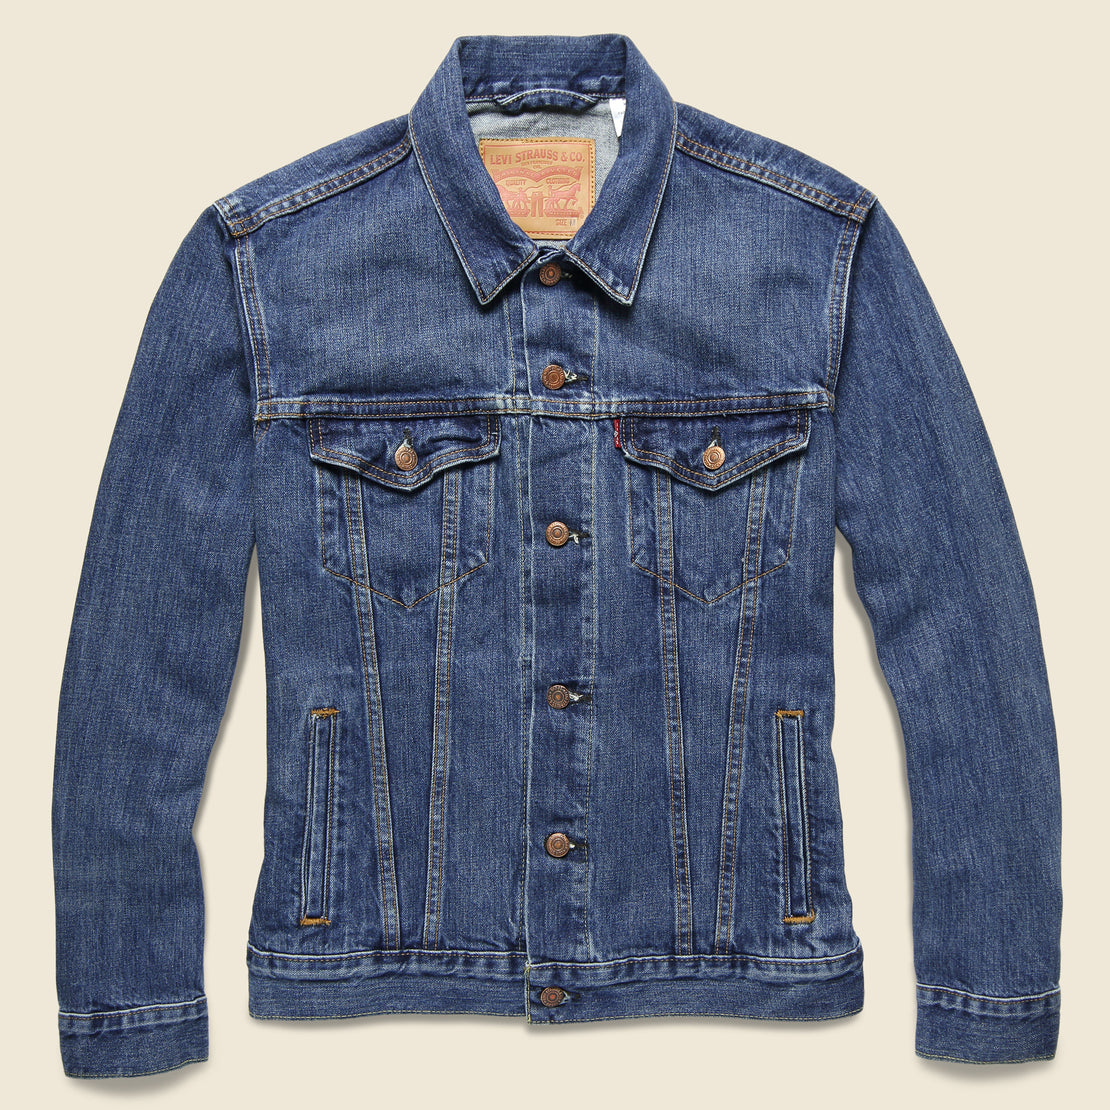 Levis Premium Trucker Jacket - The Shelf